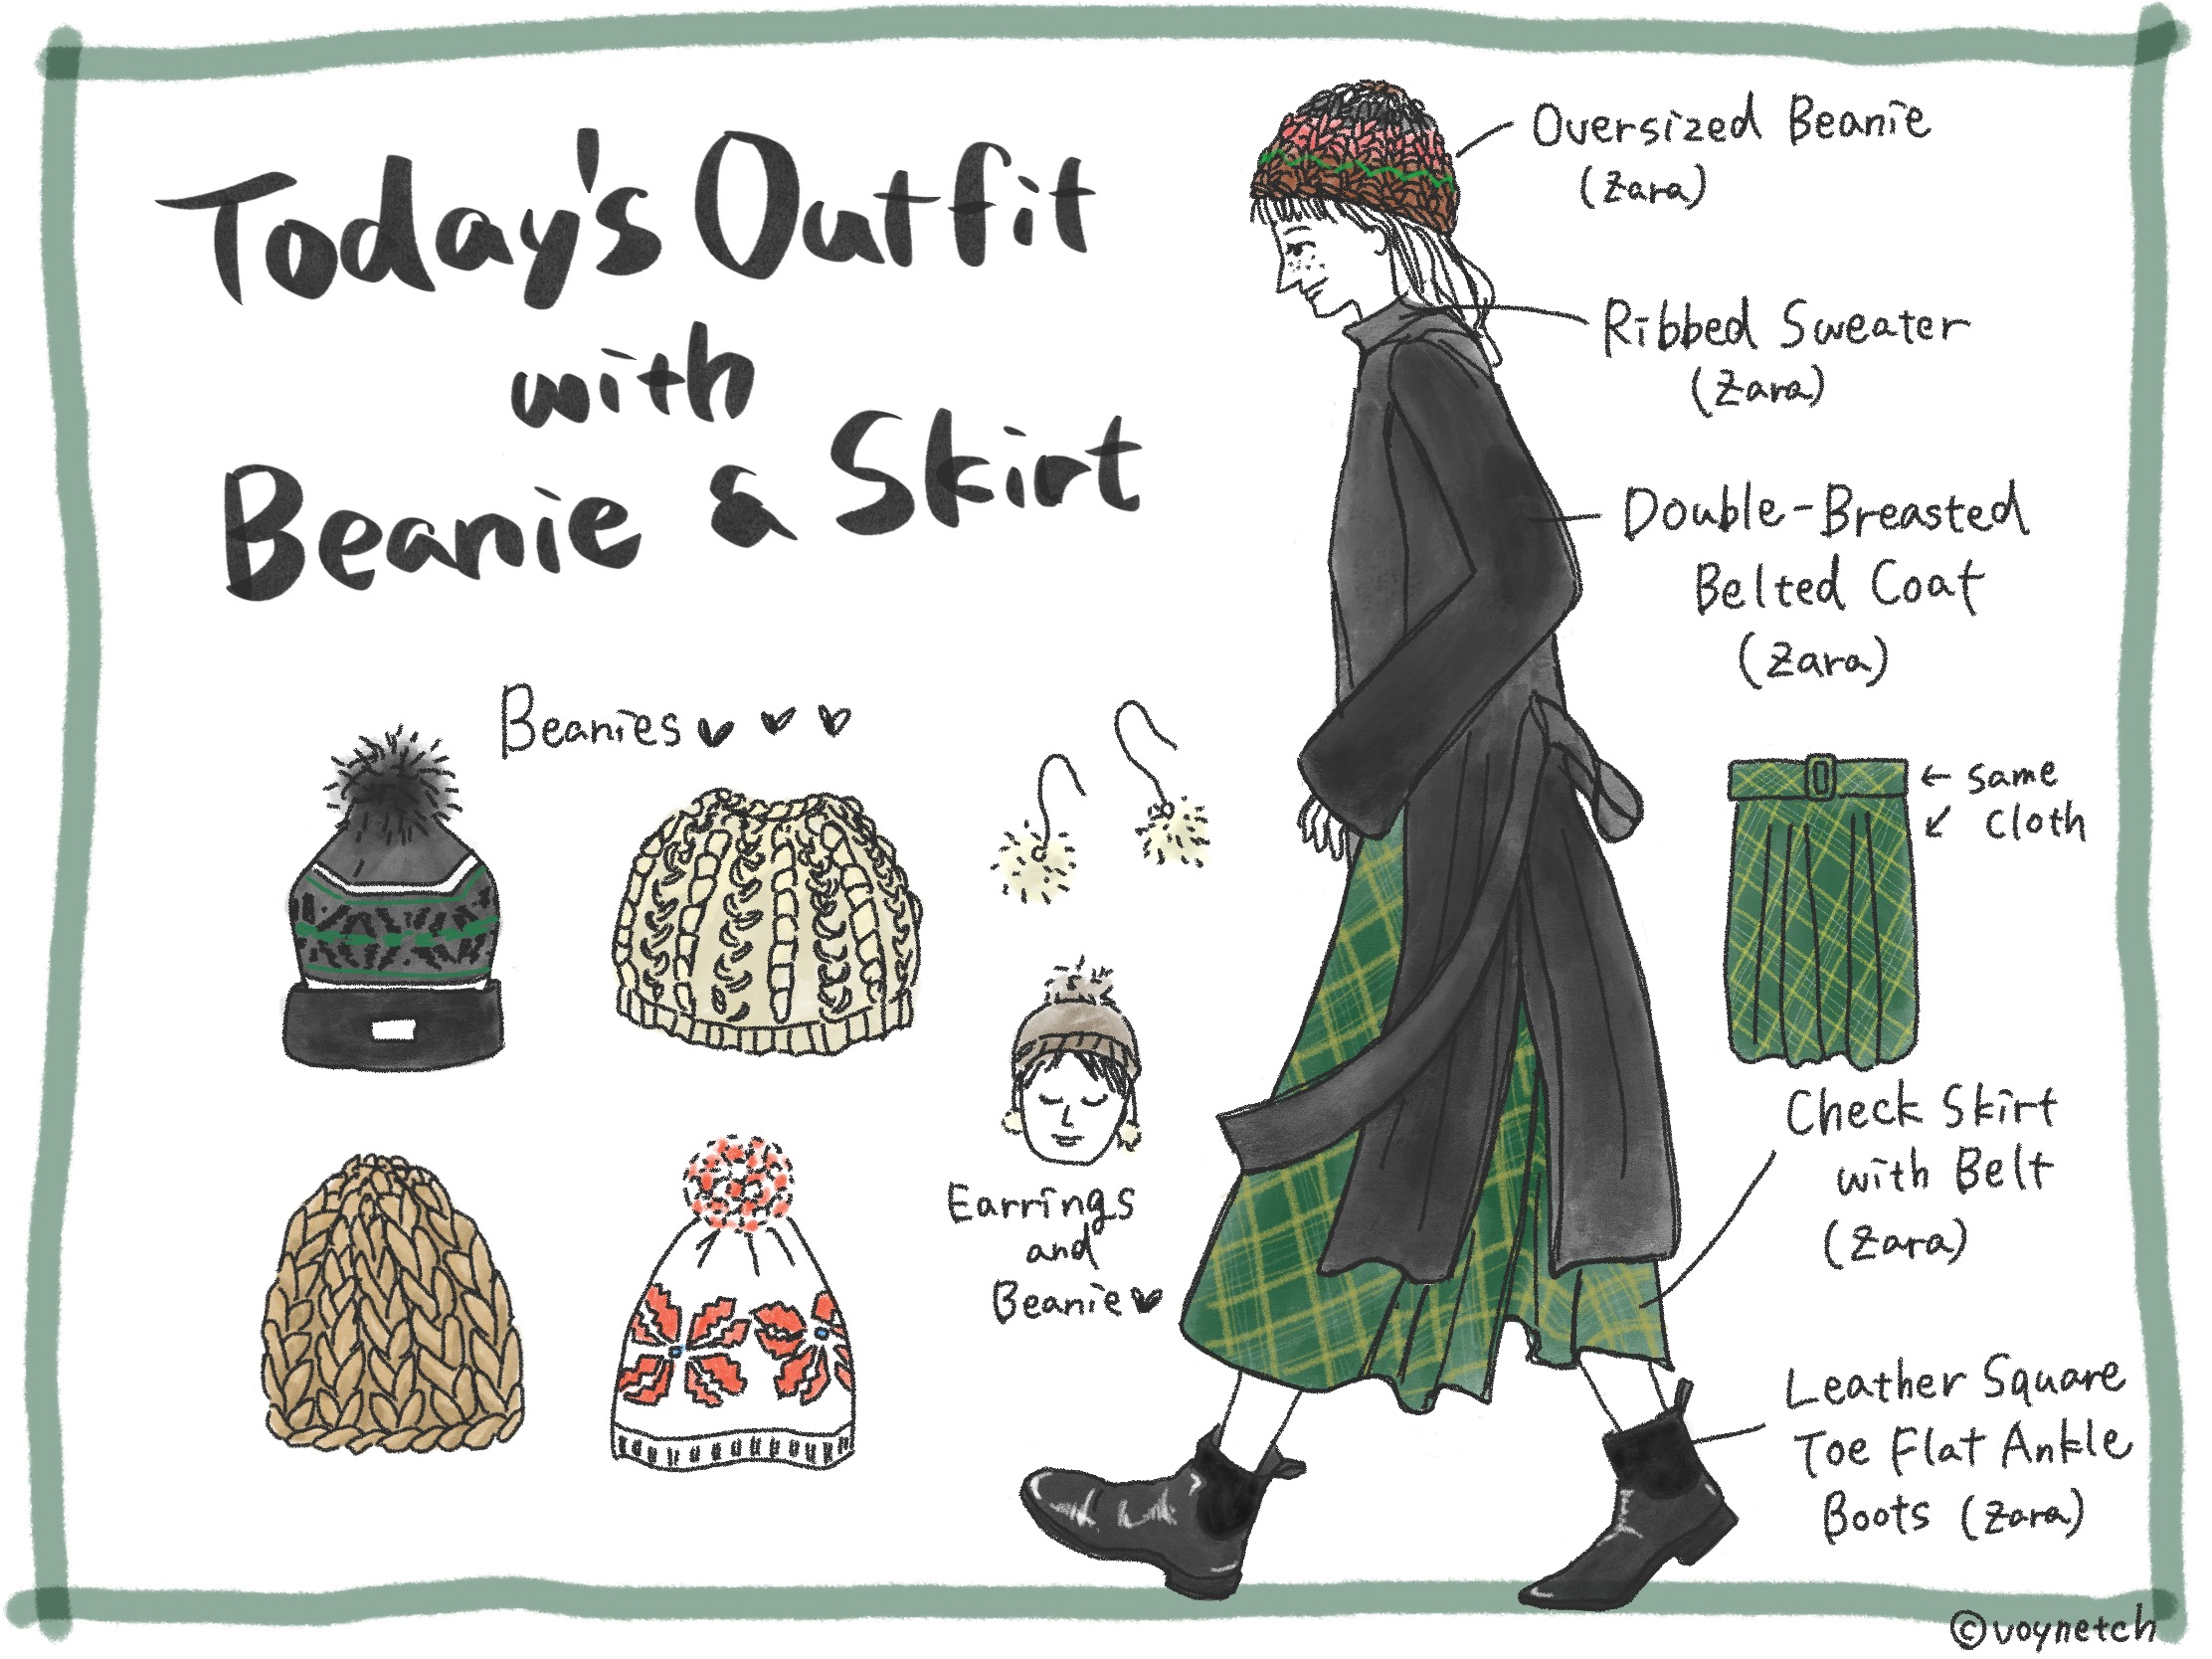 Today's Outfit with Beanie & Skirt